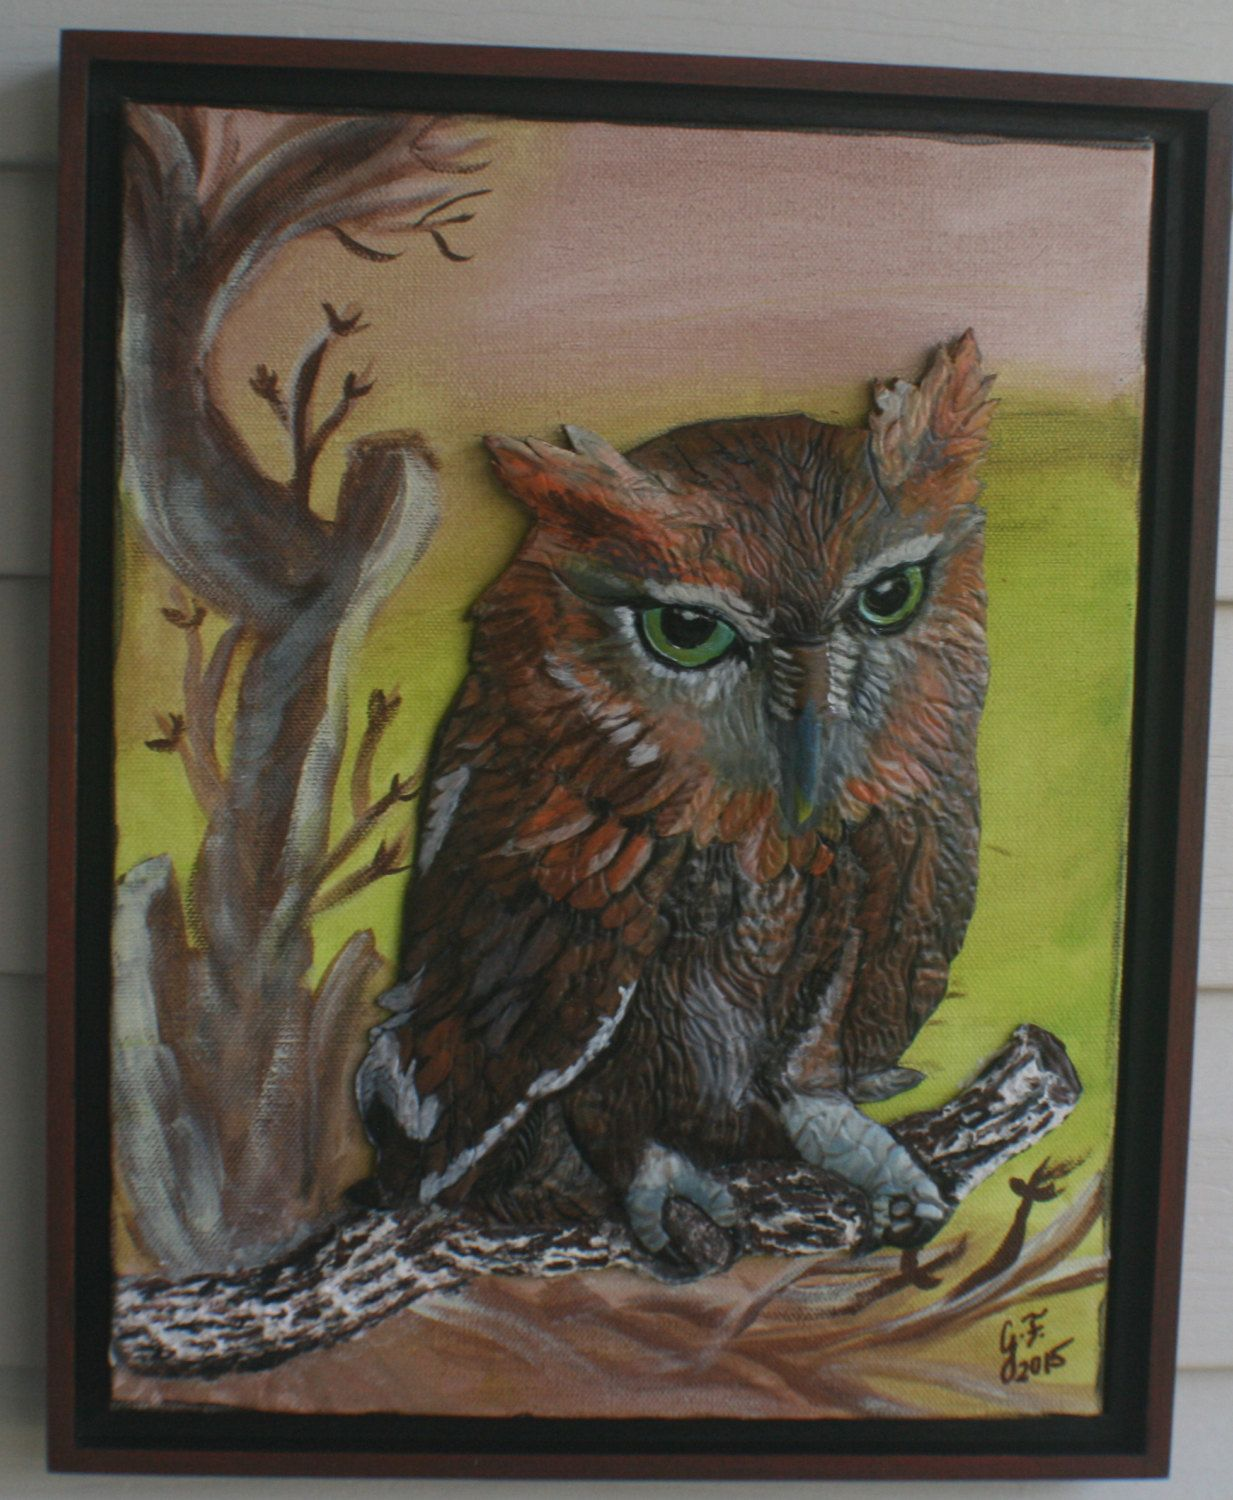 Screech Owl, Framed Stretched Canvas LEATHER SCULPTURE 3D Art, Wall ...